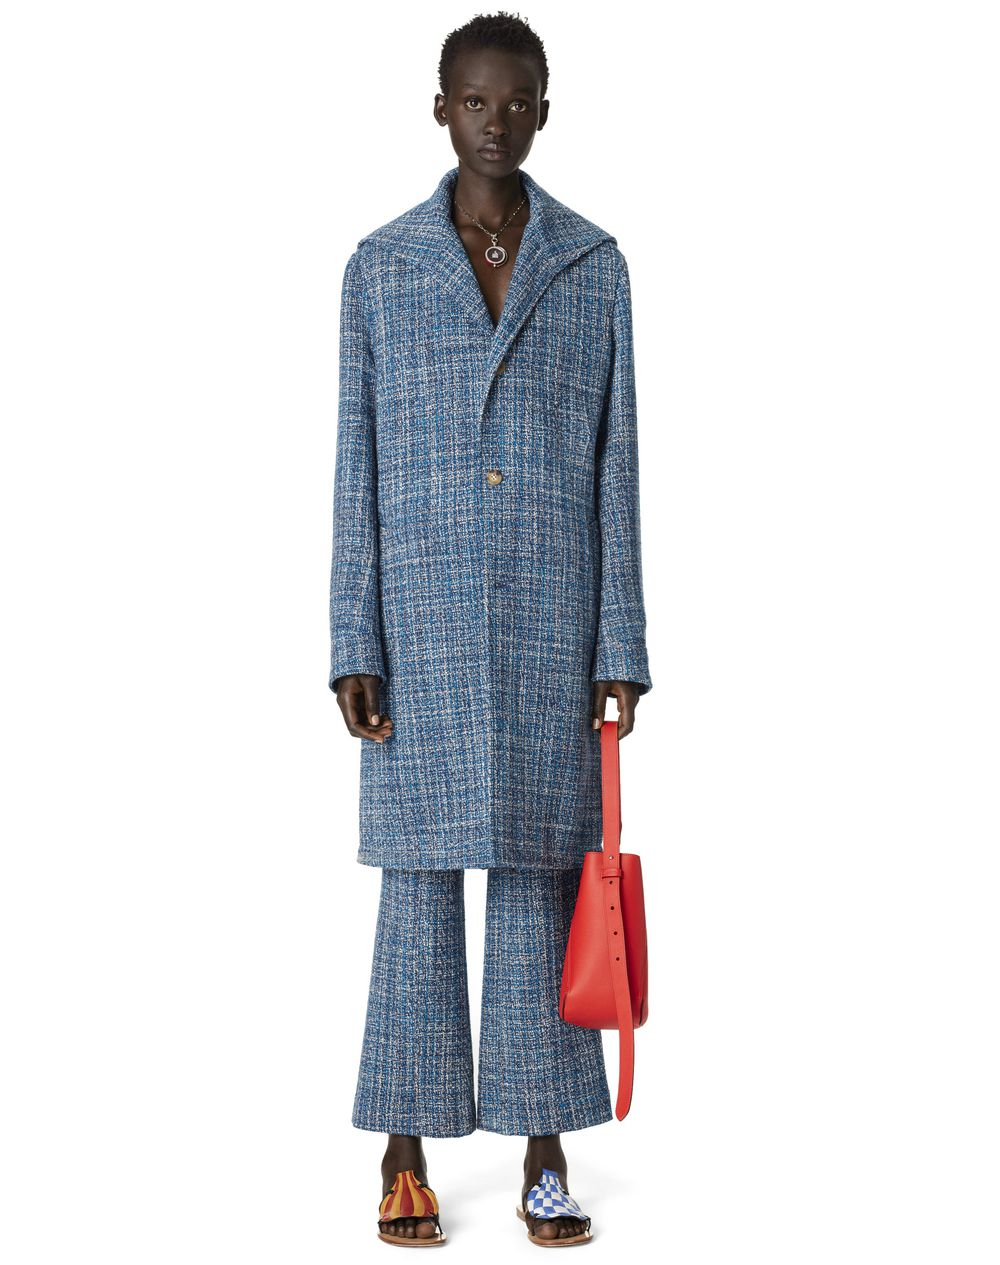 TWEED COAT WITH SAILOR COLLAR - Lanvin